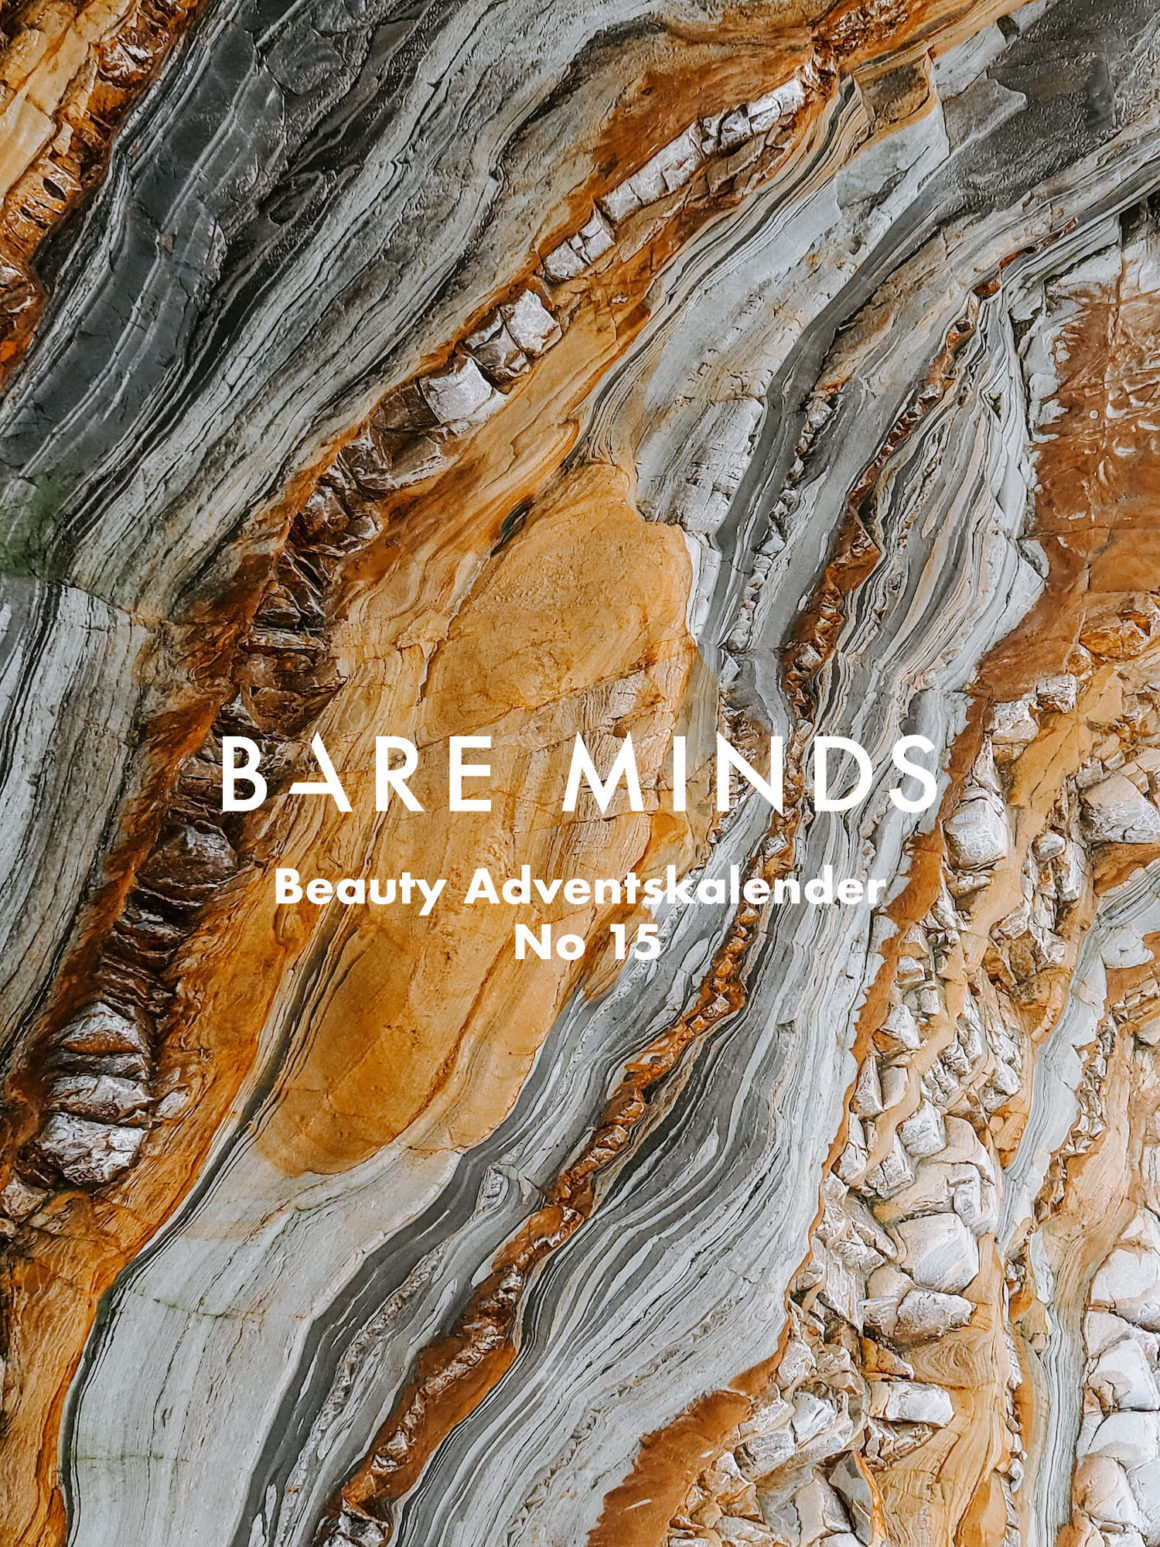 Bare Minds Adventskalender max-van-den-oetelaar-789836-unsplash